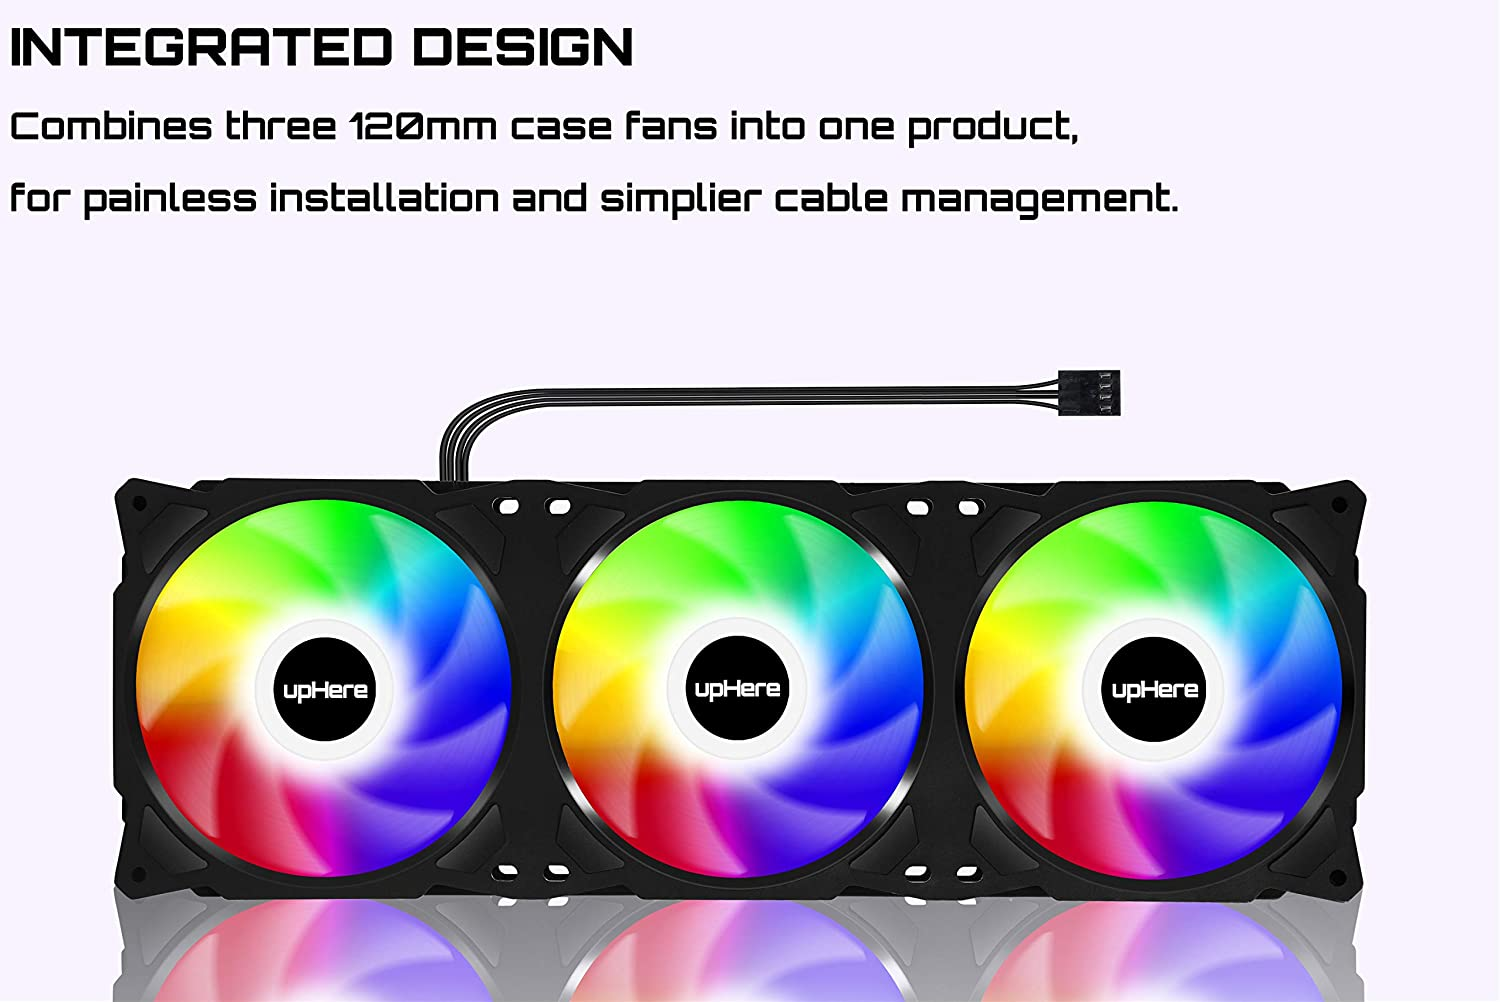 upHere PF360CF 360mm Quiet Edition High Airflow Colorful LED Computer Case Fan,Hydraulic Bearing,Cable Management and PWM Control Fan